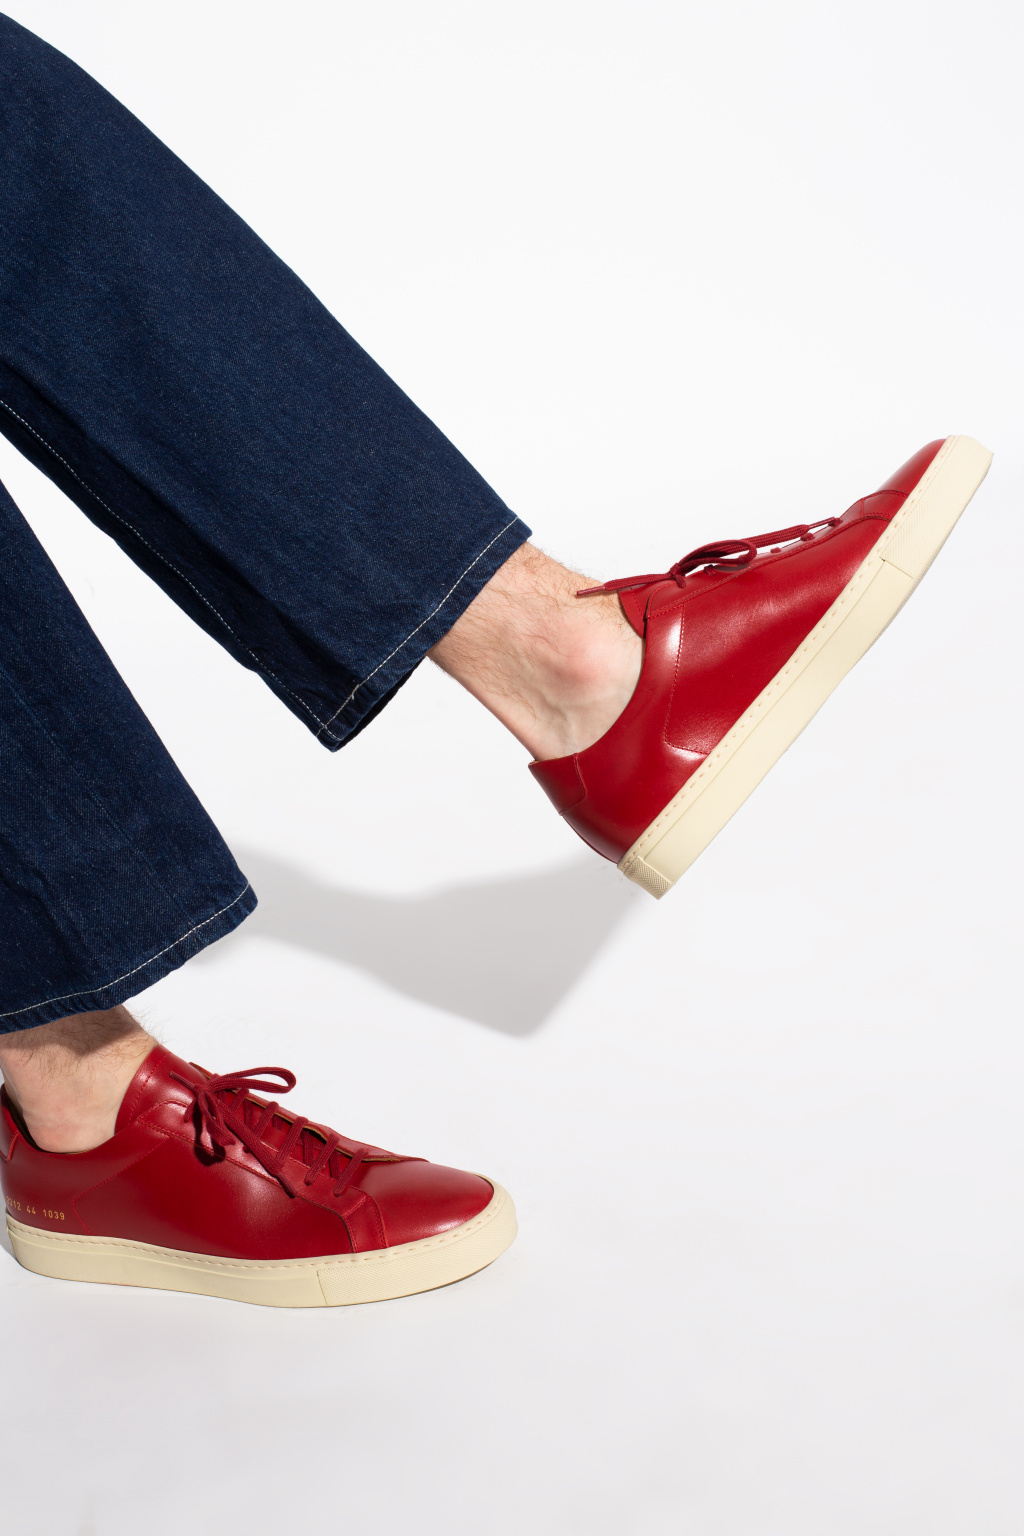 Common Projects 'Retro Vintage' sneakers